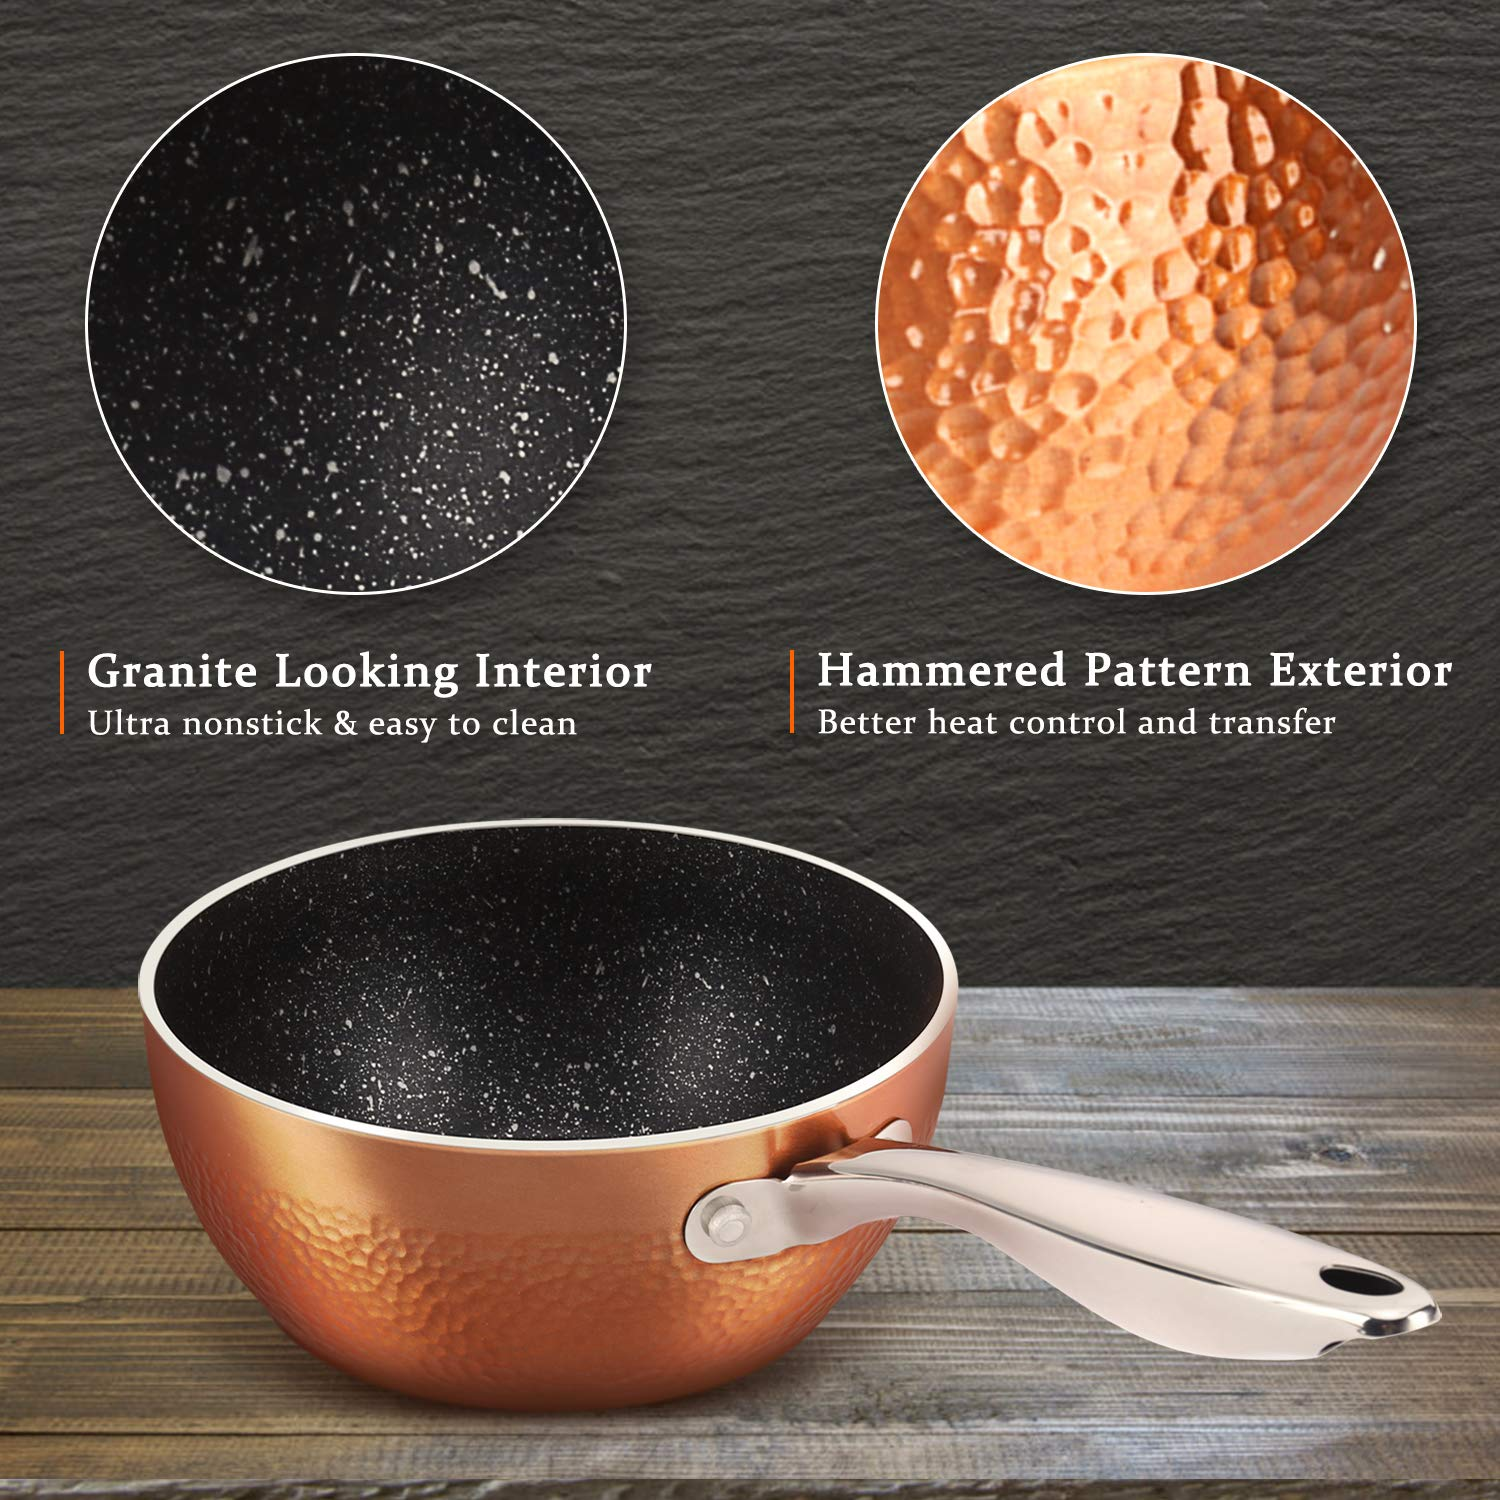 MICHELANGELO 1.5 Quart Sauce Pan with Lid, Small Copper Saucepan with Nonstick Stone Interior Coating & Hammering Exterior by MICHELANGELO (Image #3)